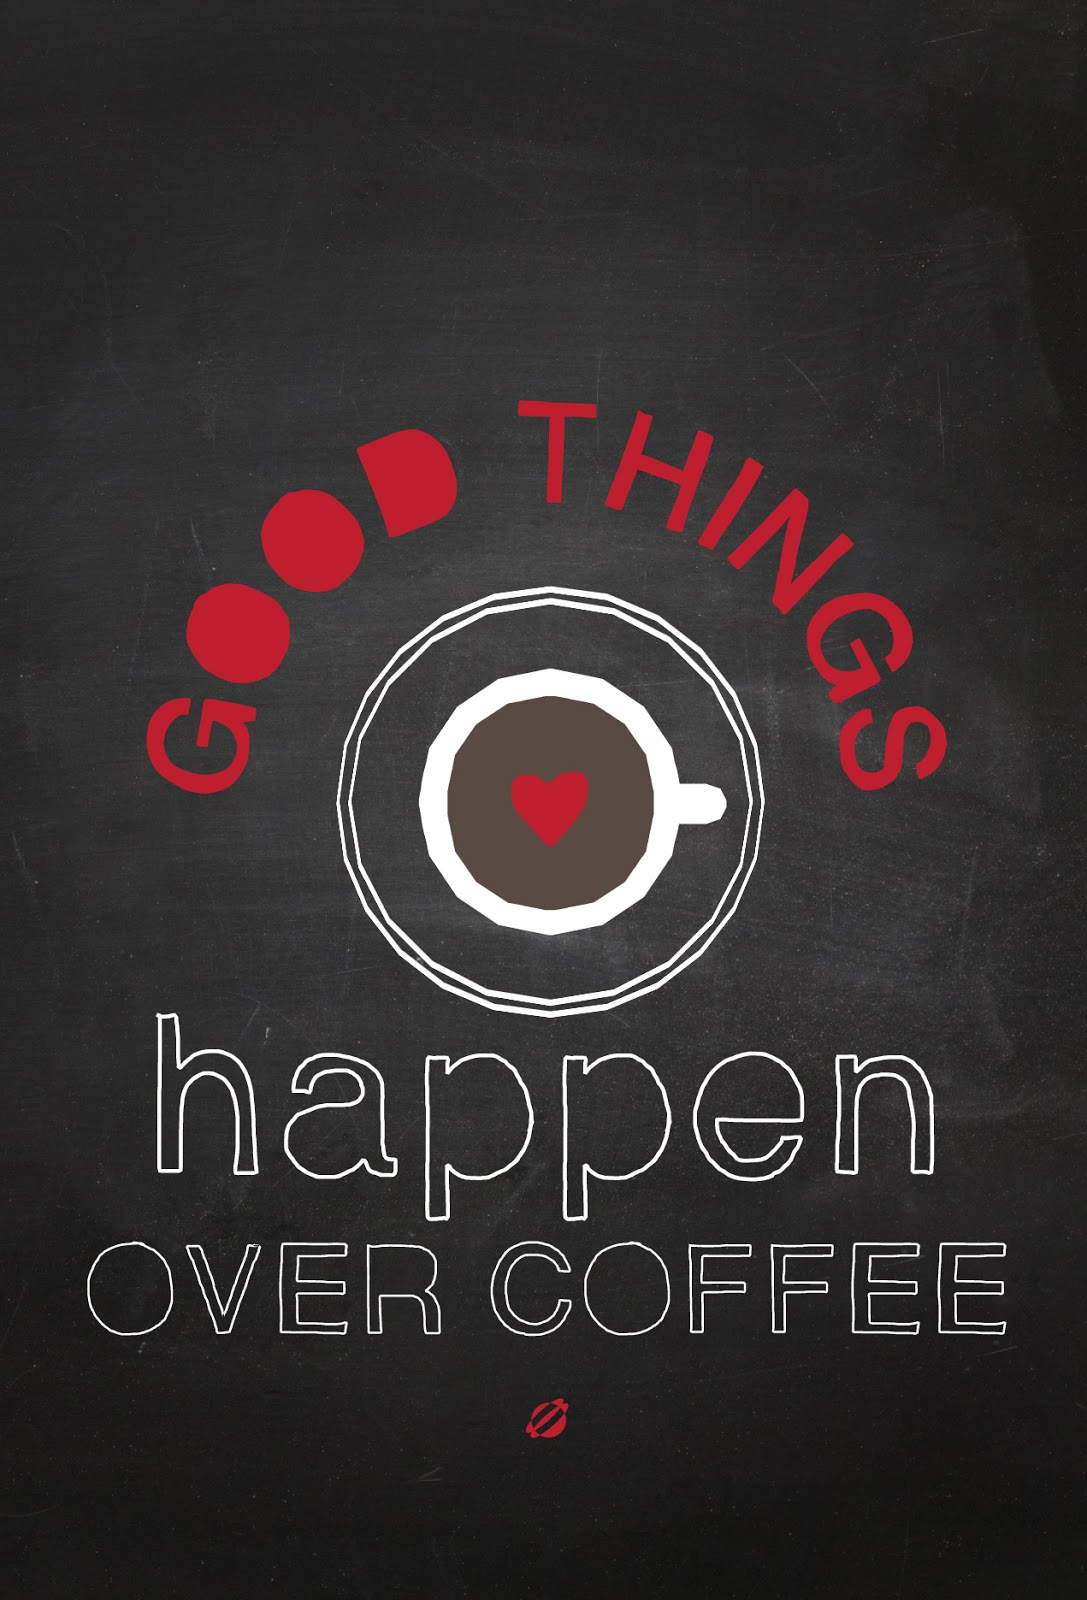 LostBumblebee ©2014 Good Things Happen Over Coffee- Free Printable- Personal Use Only!